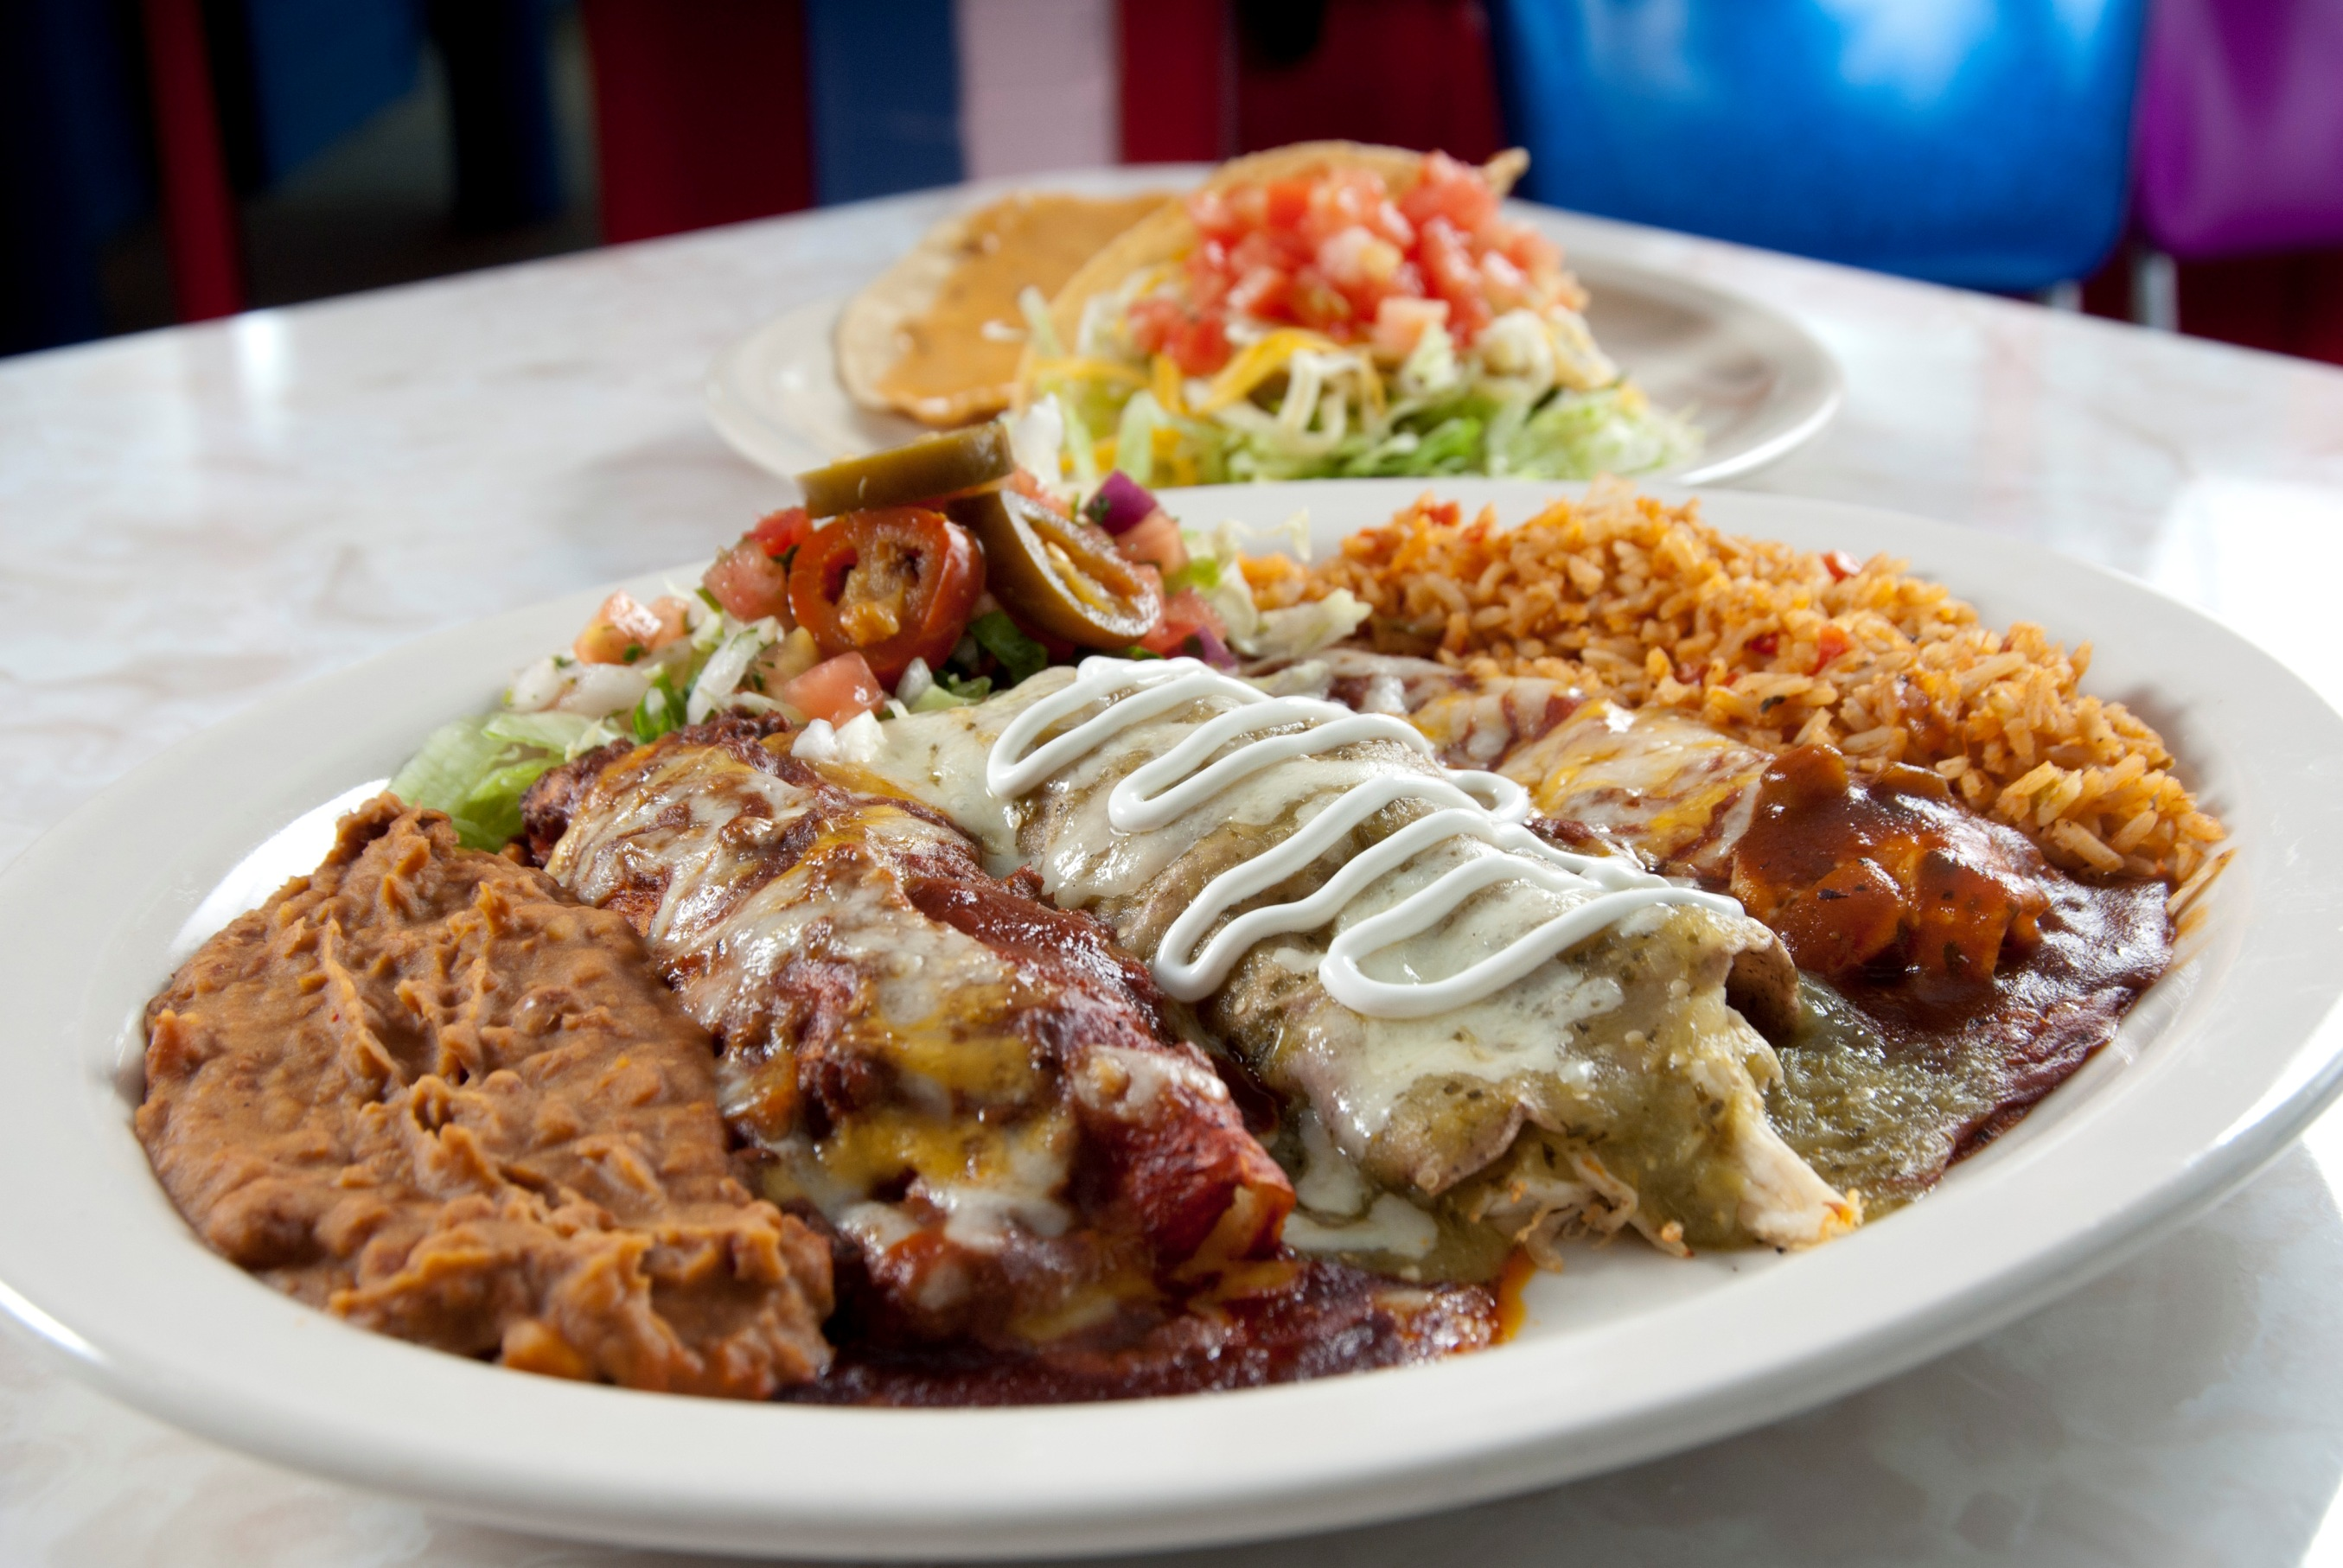 Mexican food kingston pike knoxville